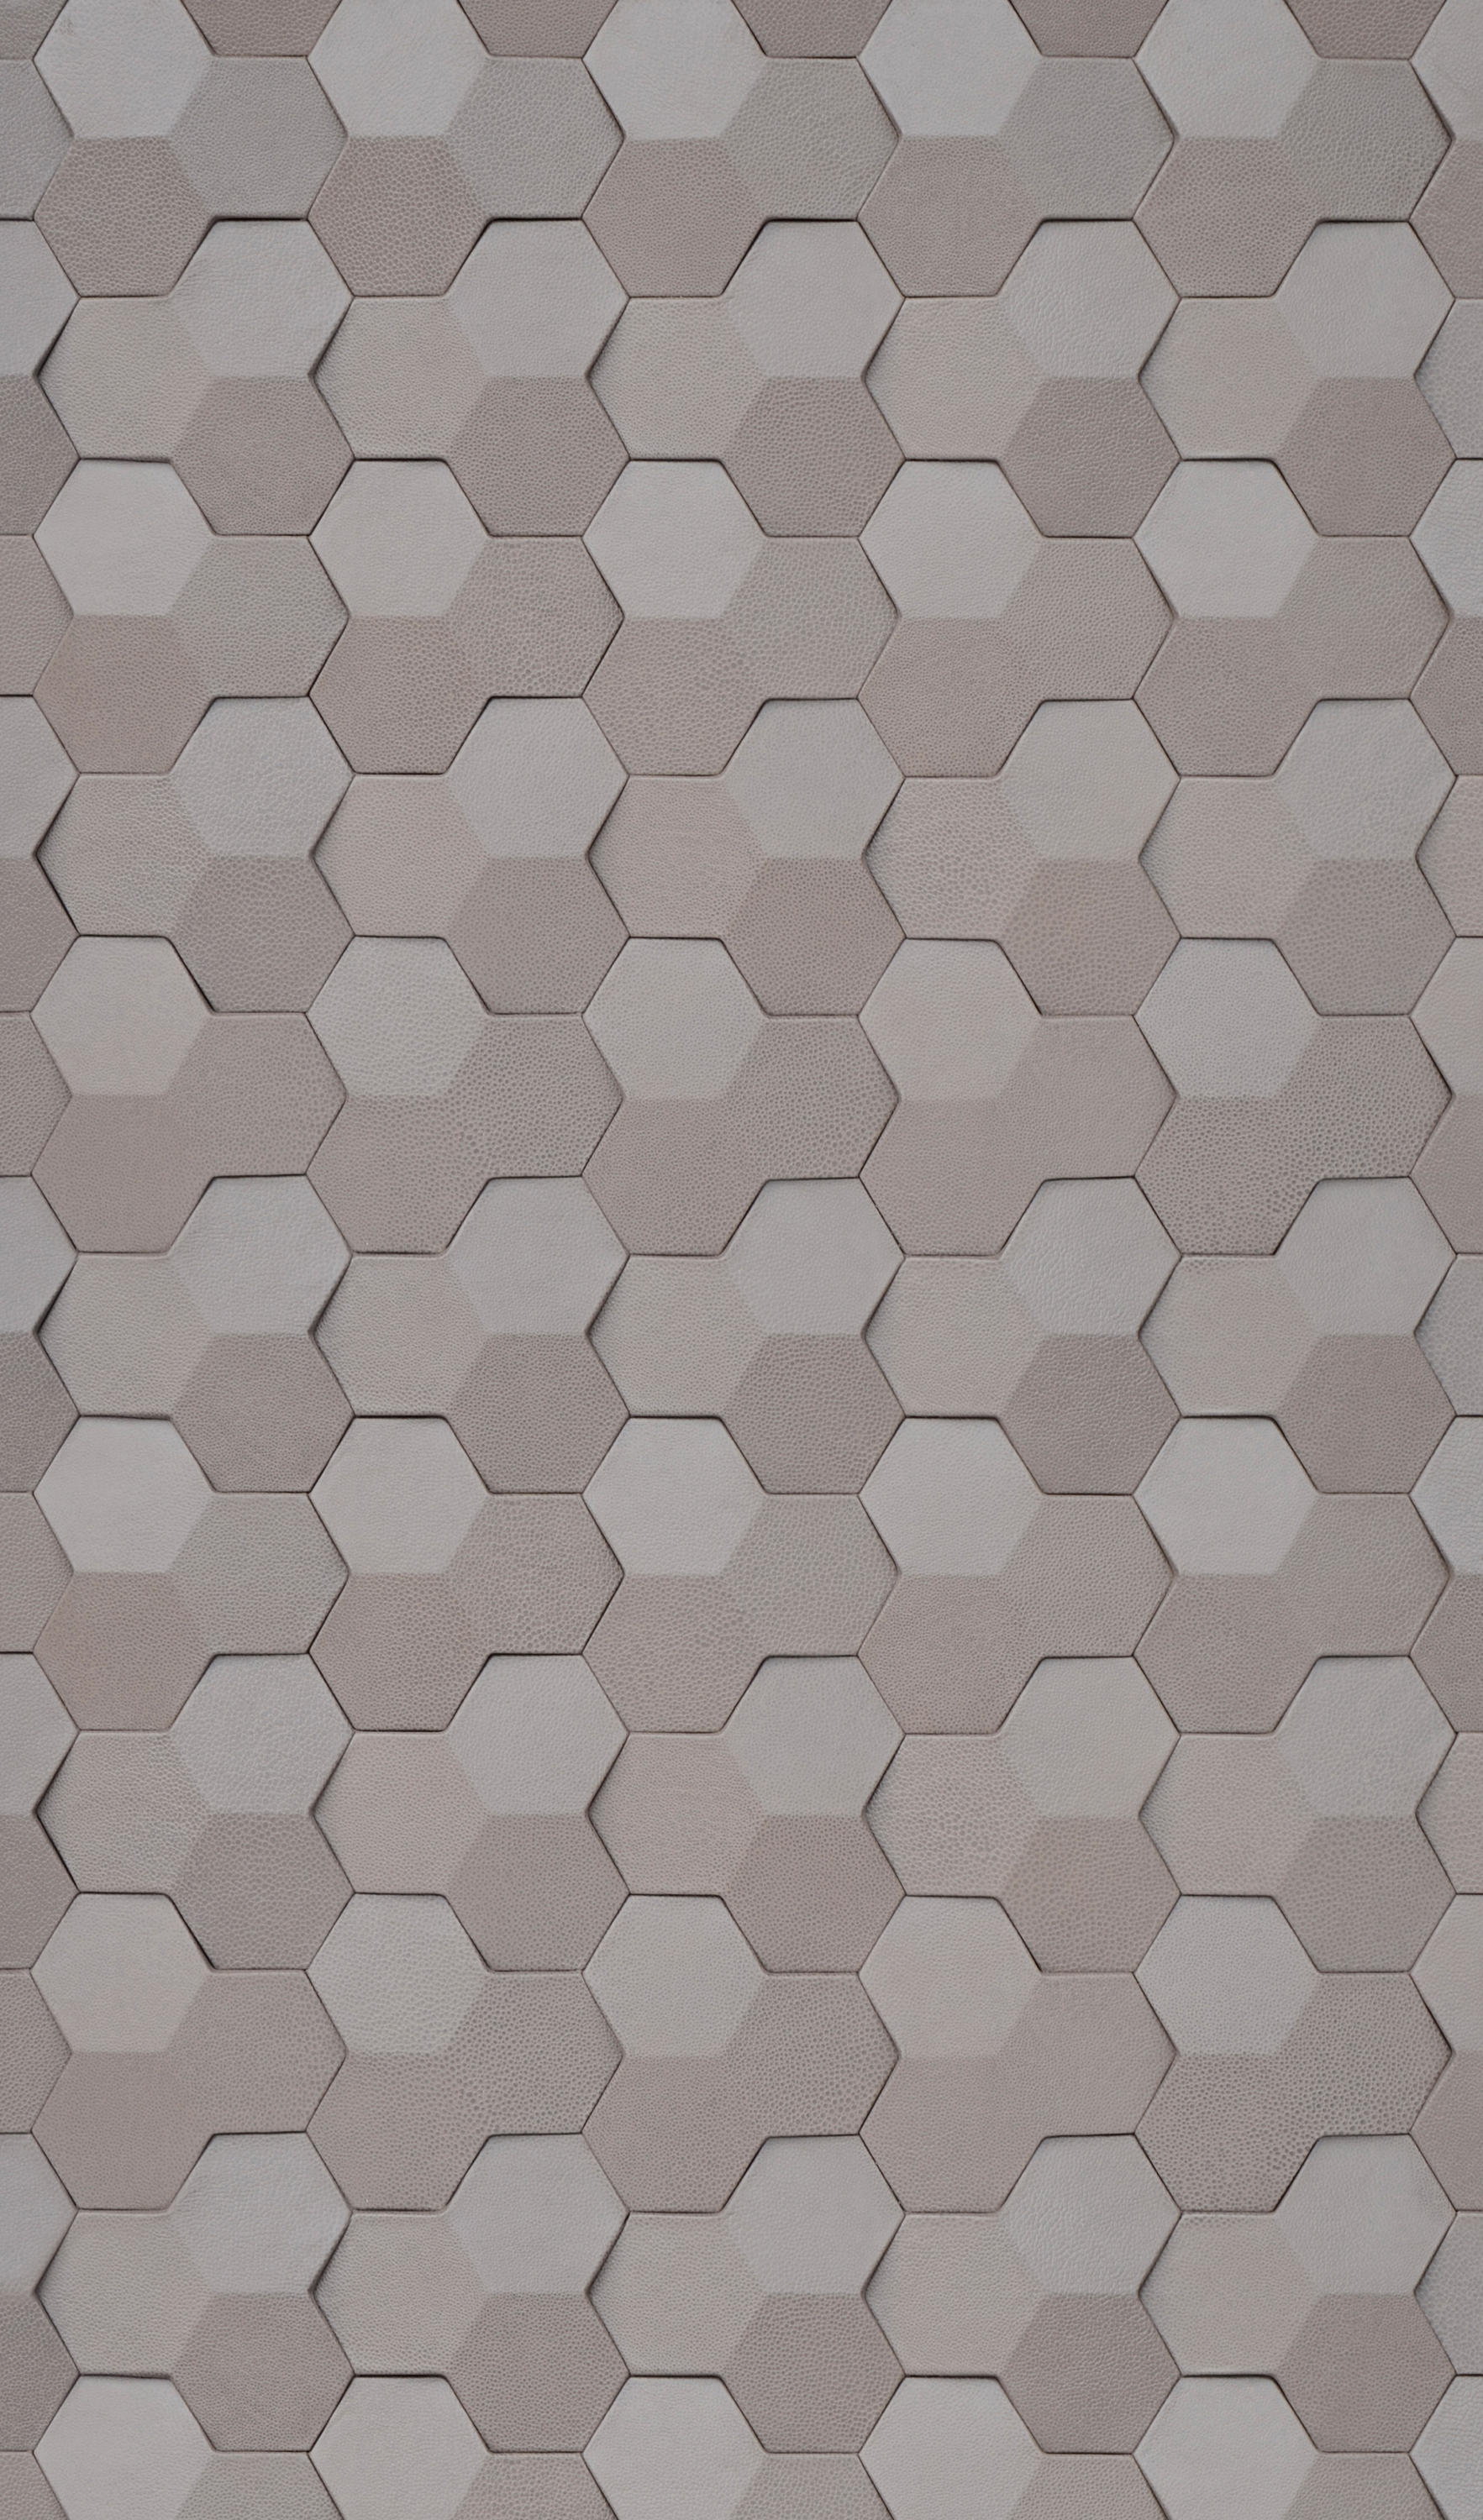 Marque lima leather tiles from pintark architonic marque lima by pintark leather tiles dailygadgetfo Images